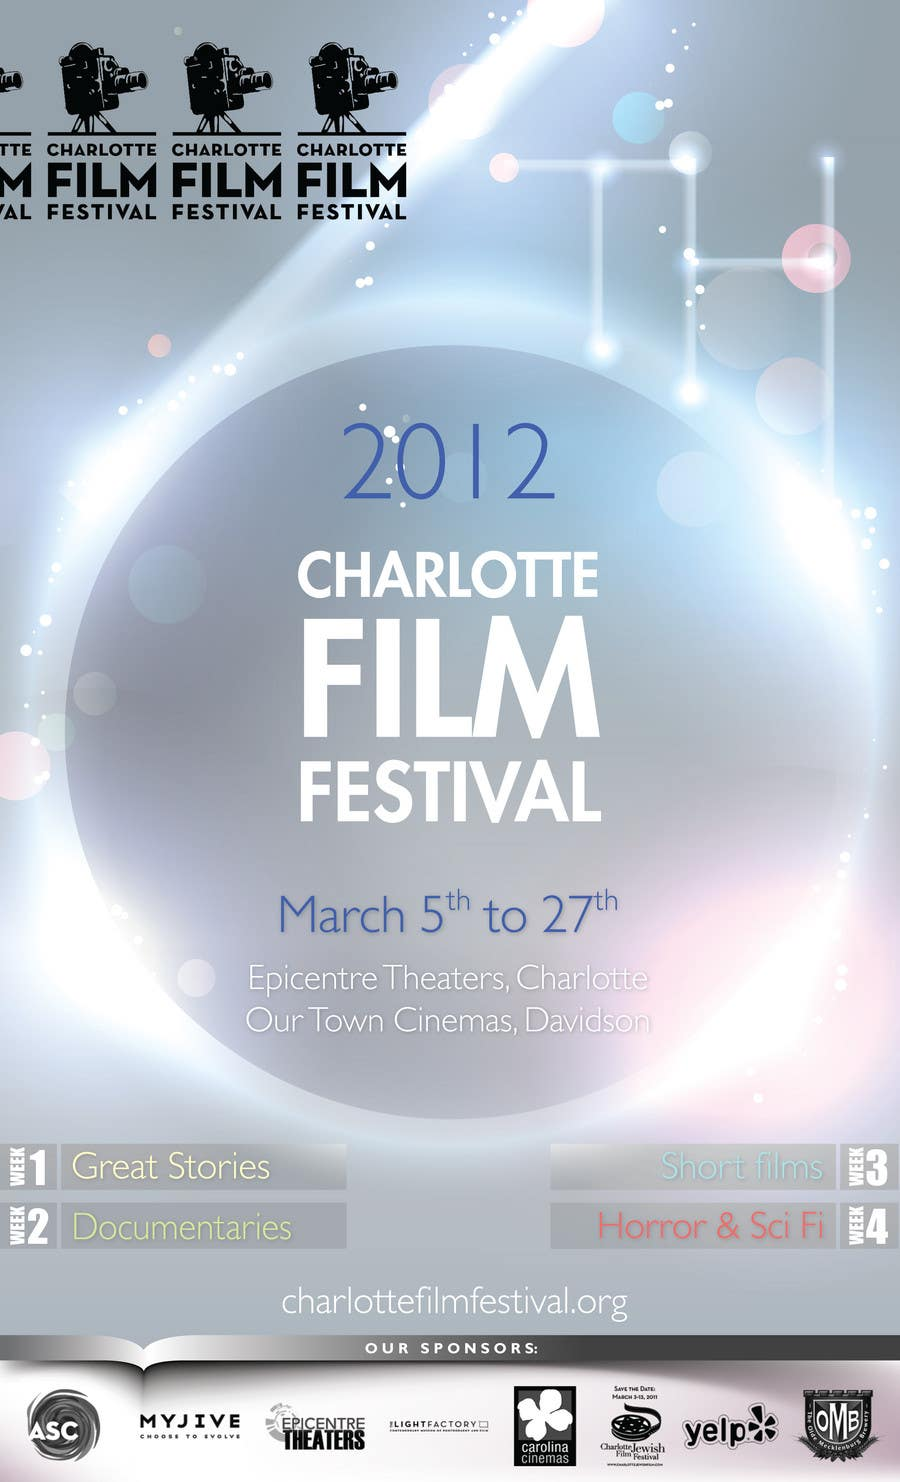 Proposition n°98 du concours Design materials for the Charlotte International Film Festival